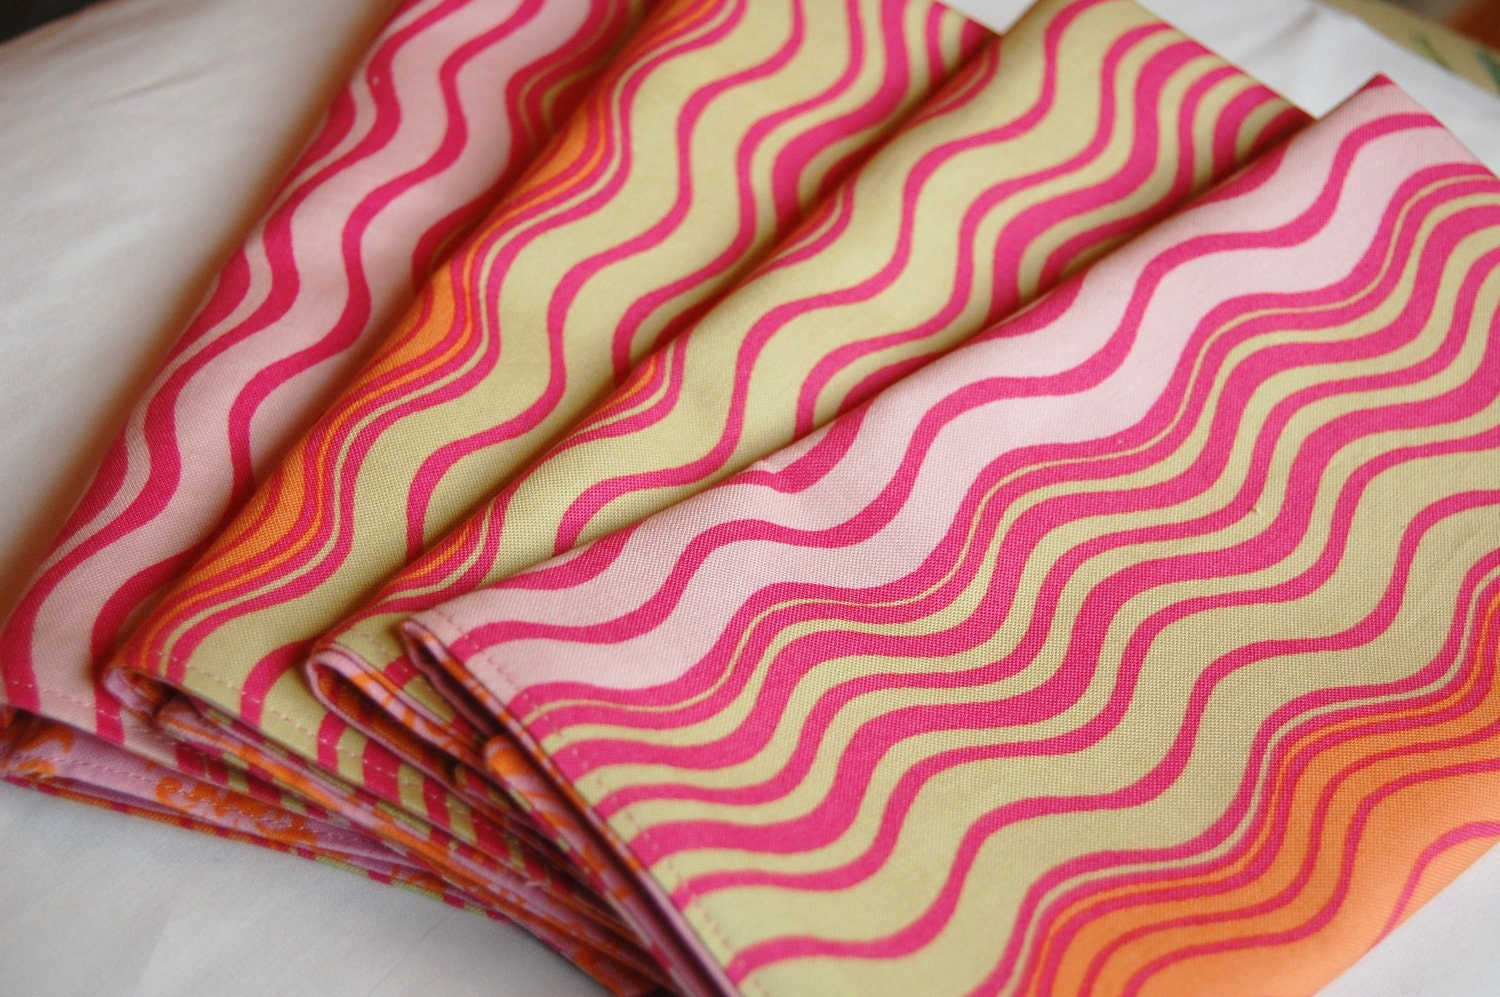 REVERSIBLE Pink Orange Fabric Napkins, Amy Butler Ripple Stripe, Park Fountains, Eco Friendly Cloth, Reusable, Set of 4, Lunch, Dinner